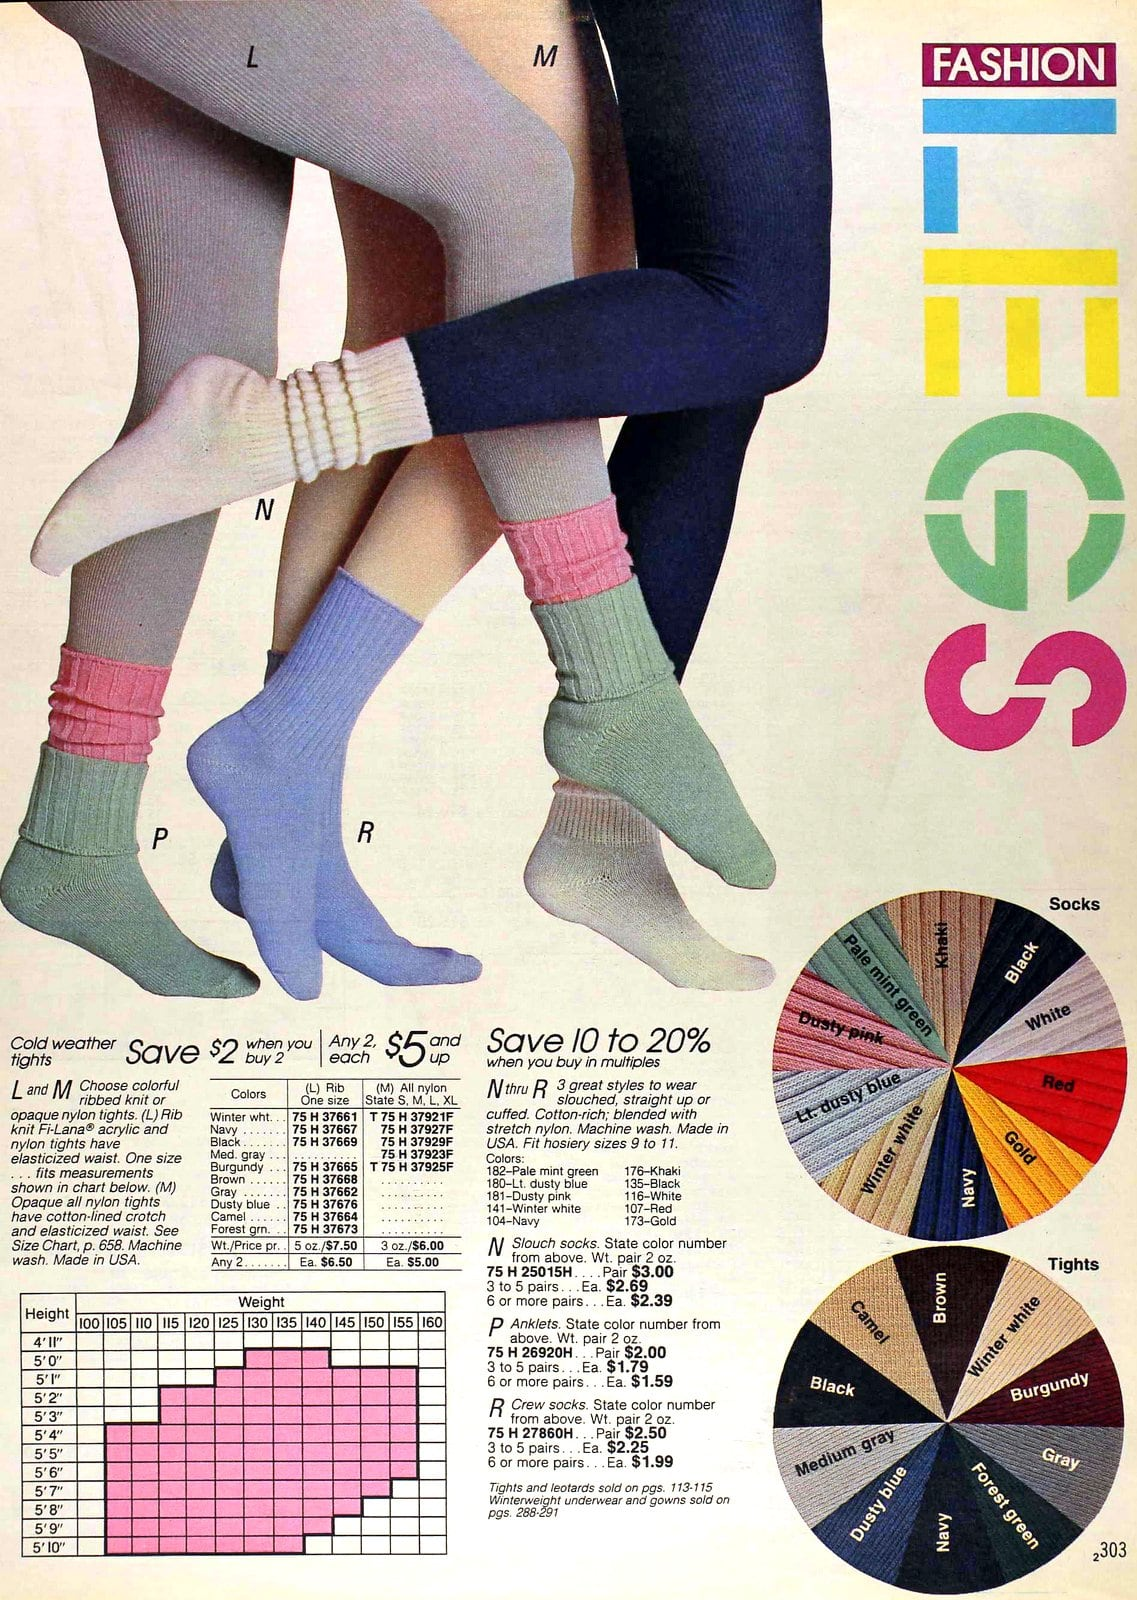 Fashion legs for her - doubled socks and socks over tights (1988)